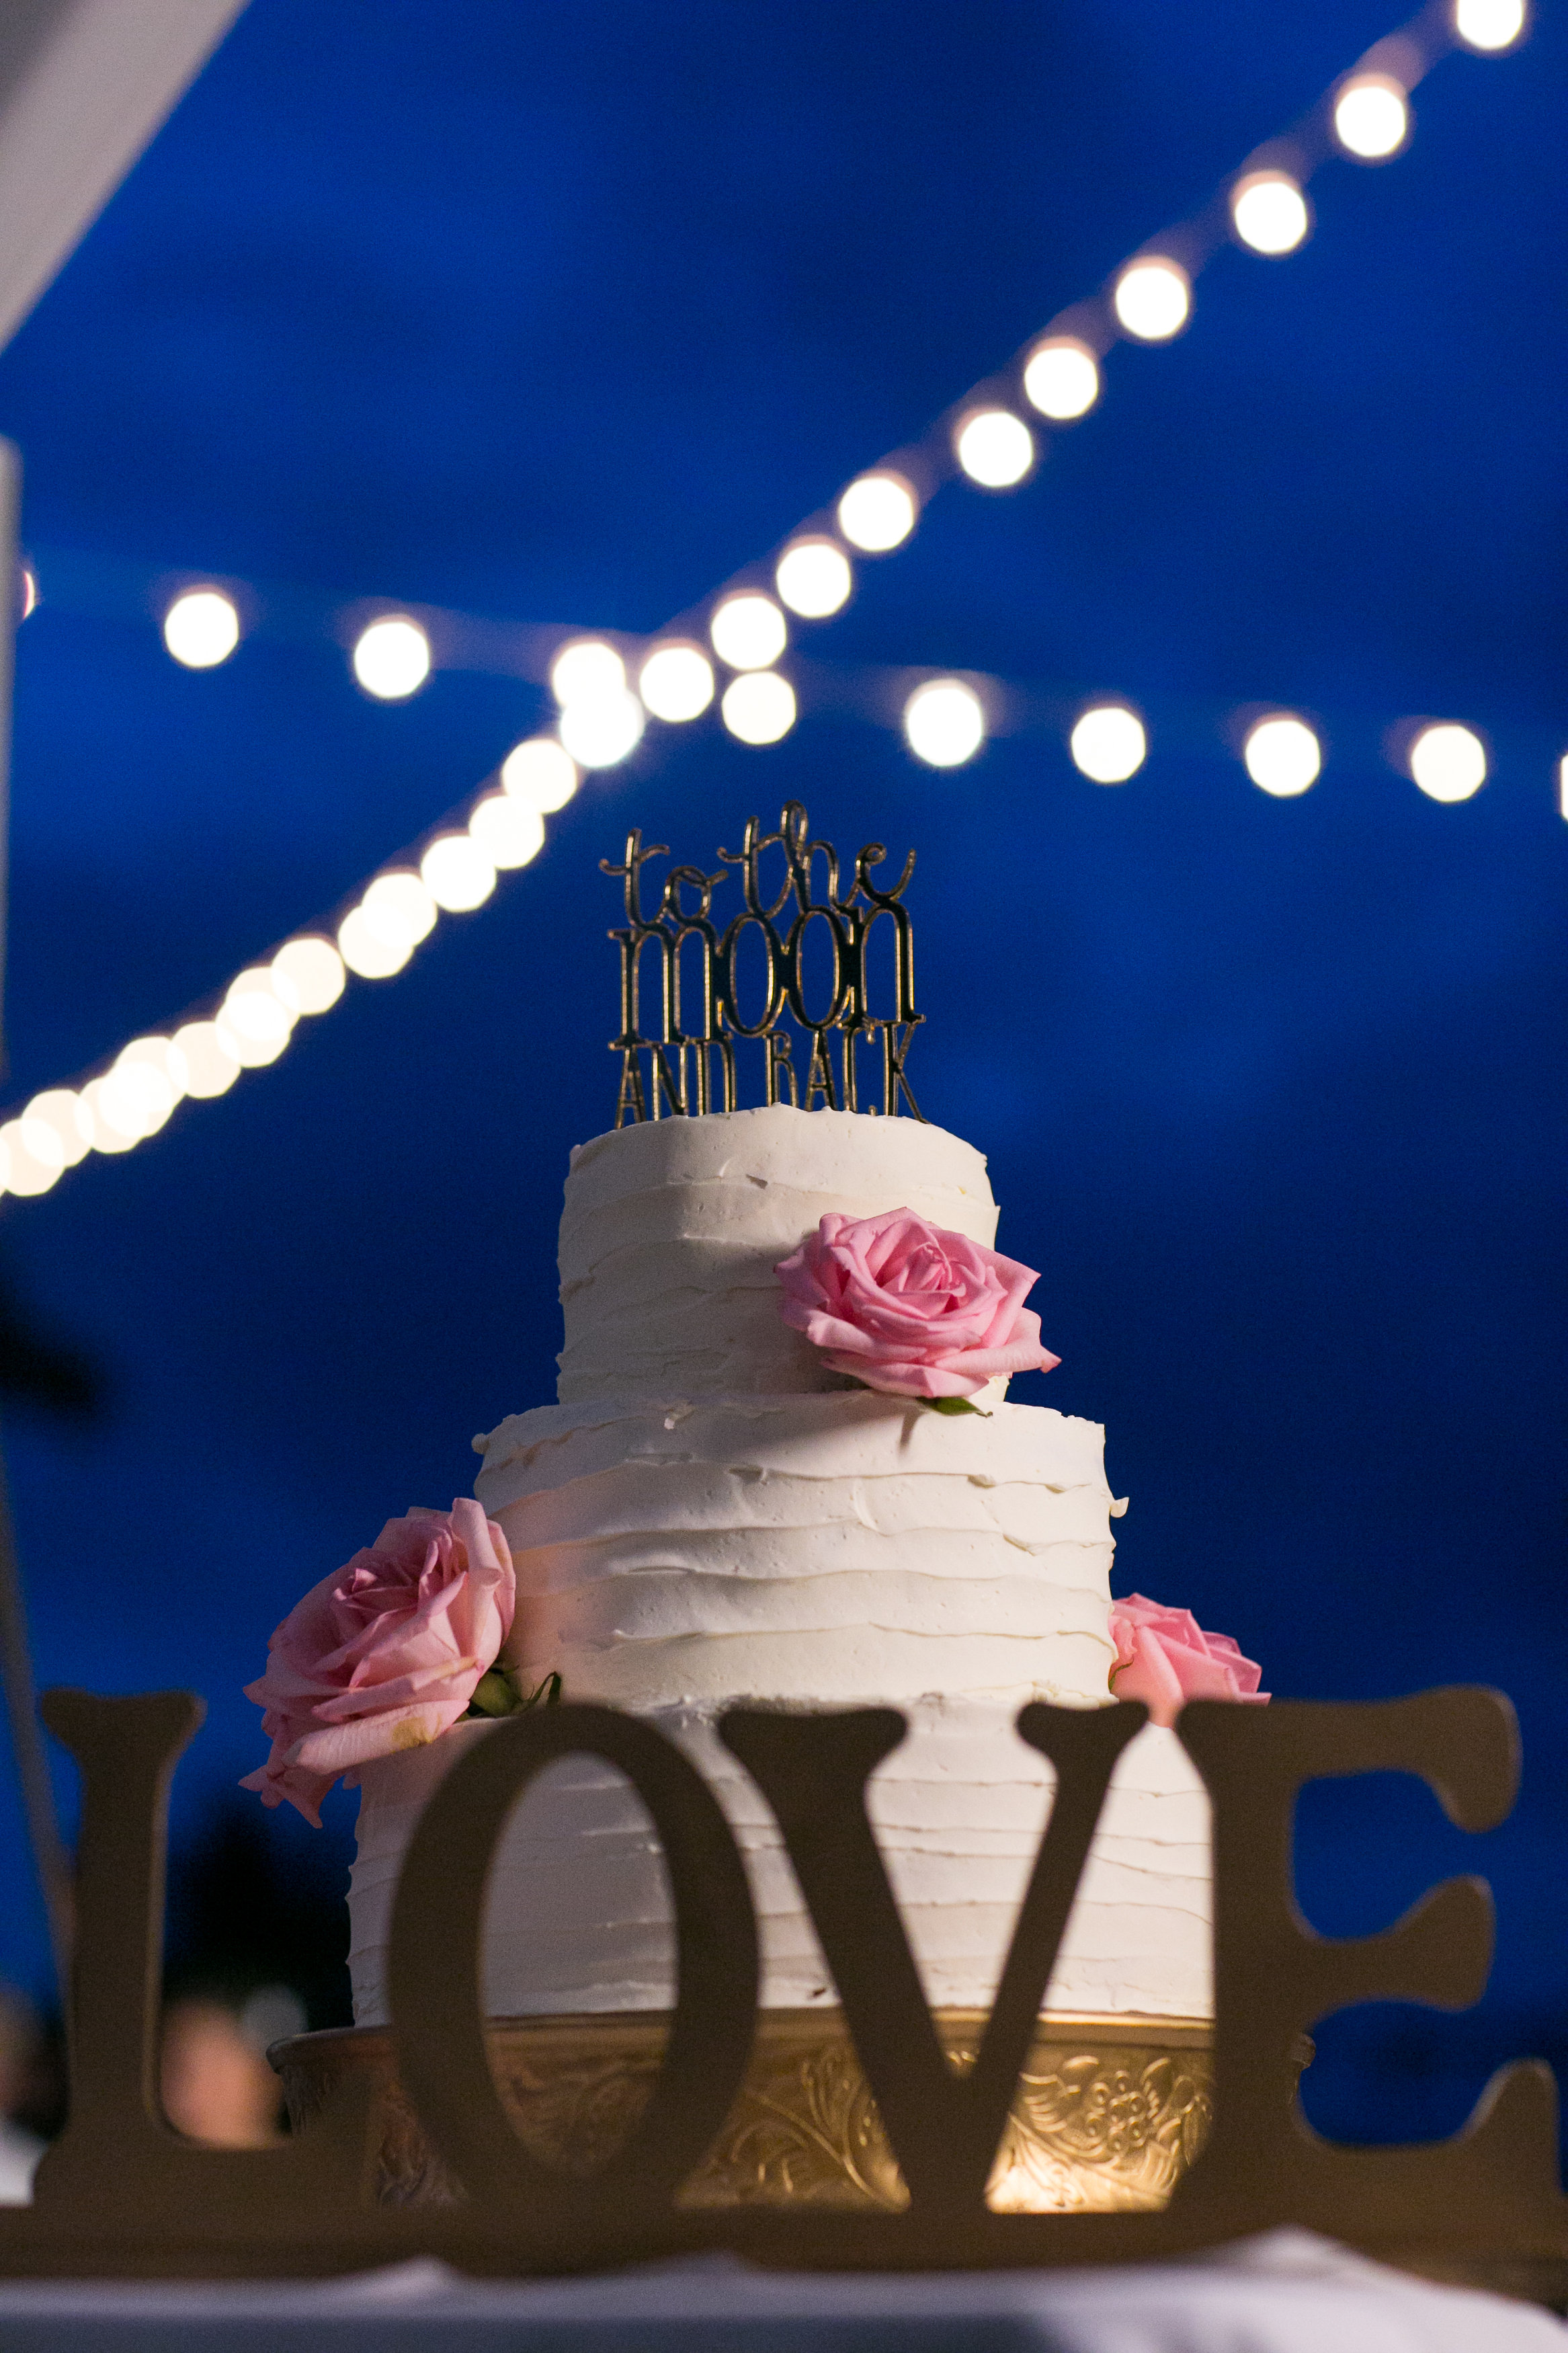 wedding cake david kim photography.jpg